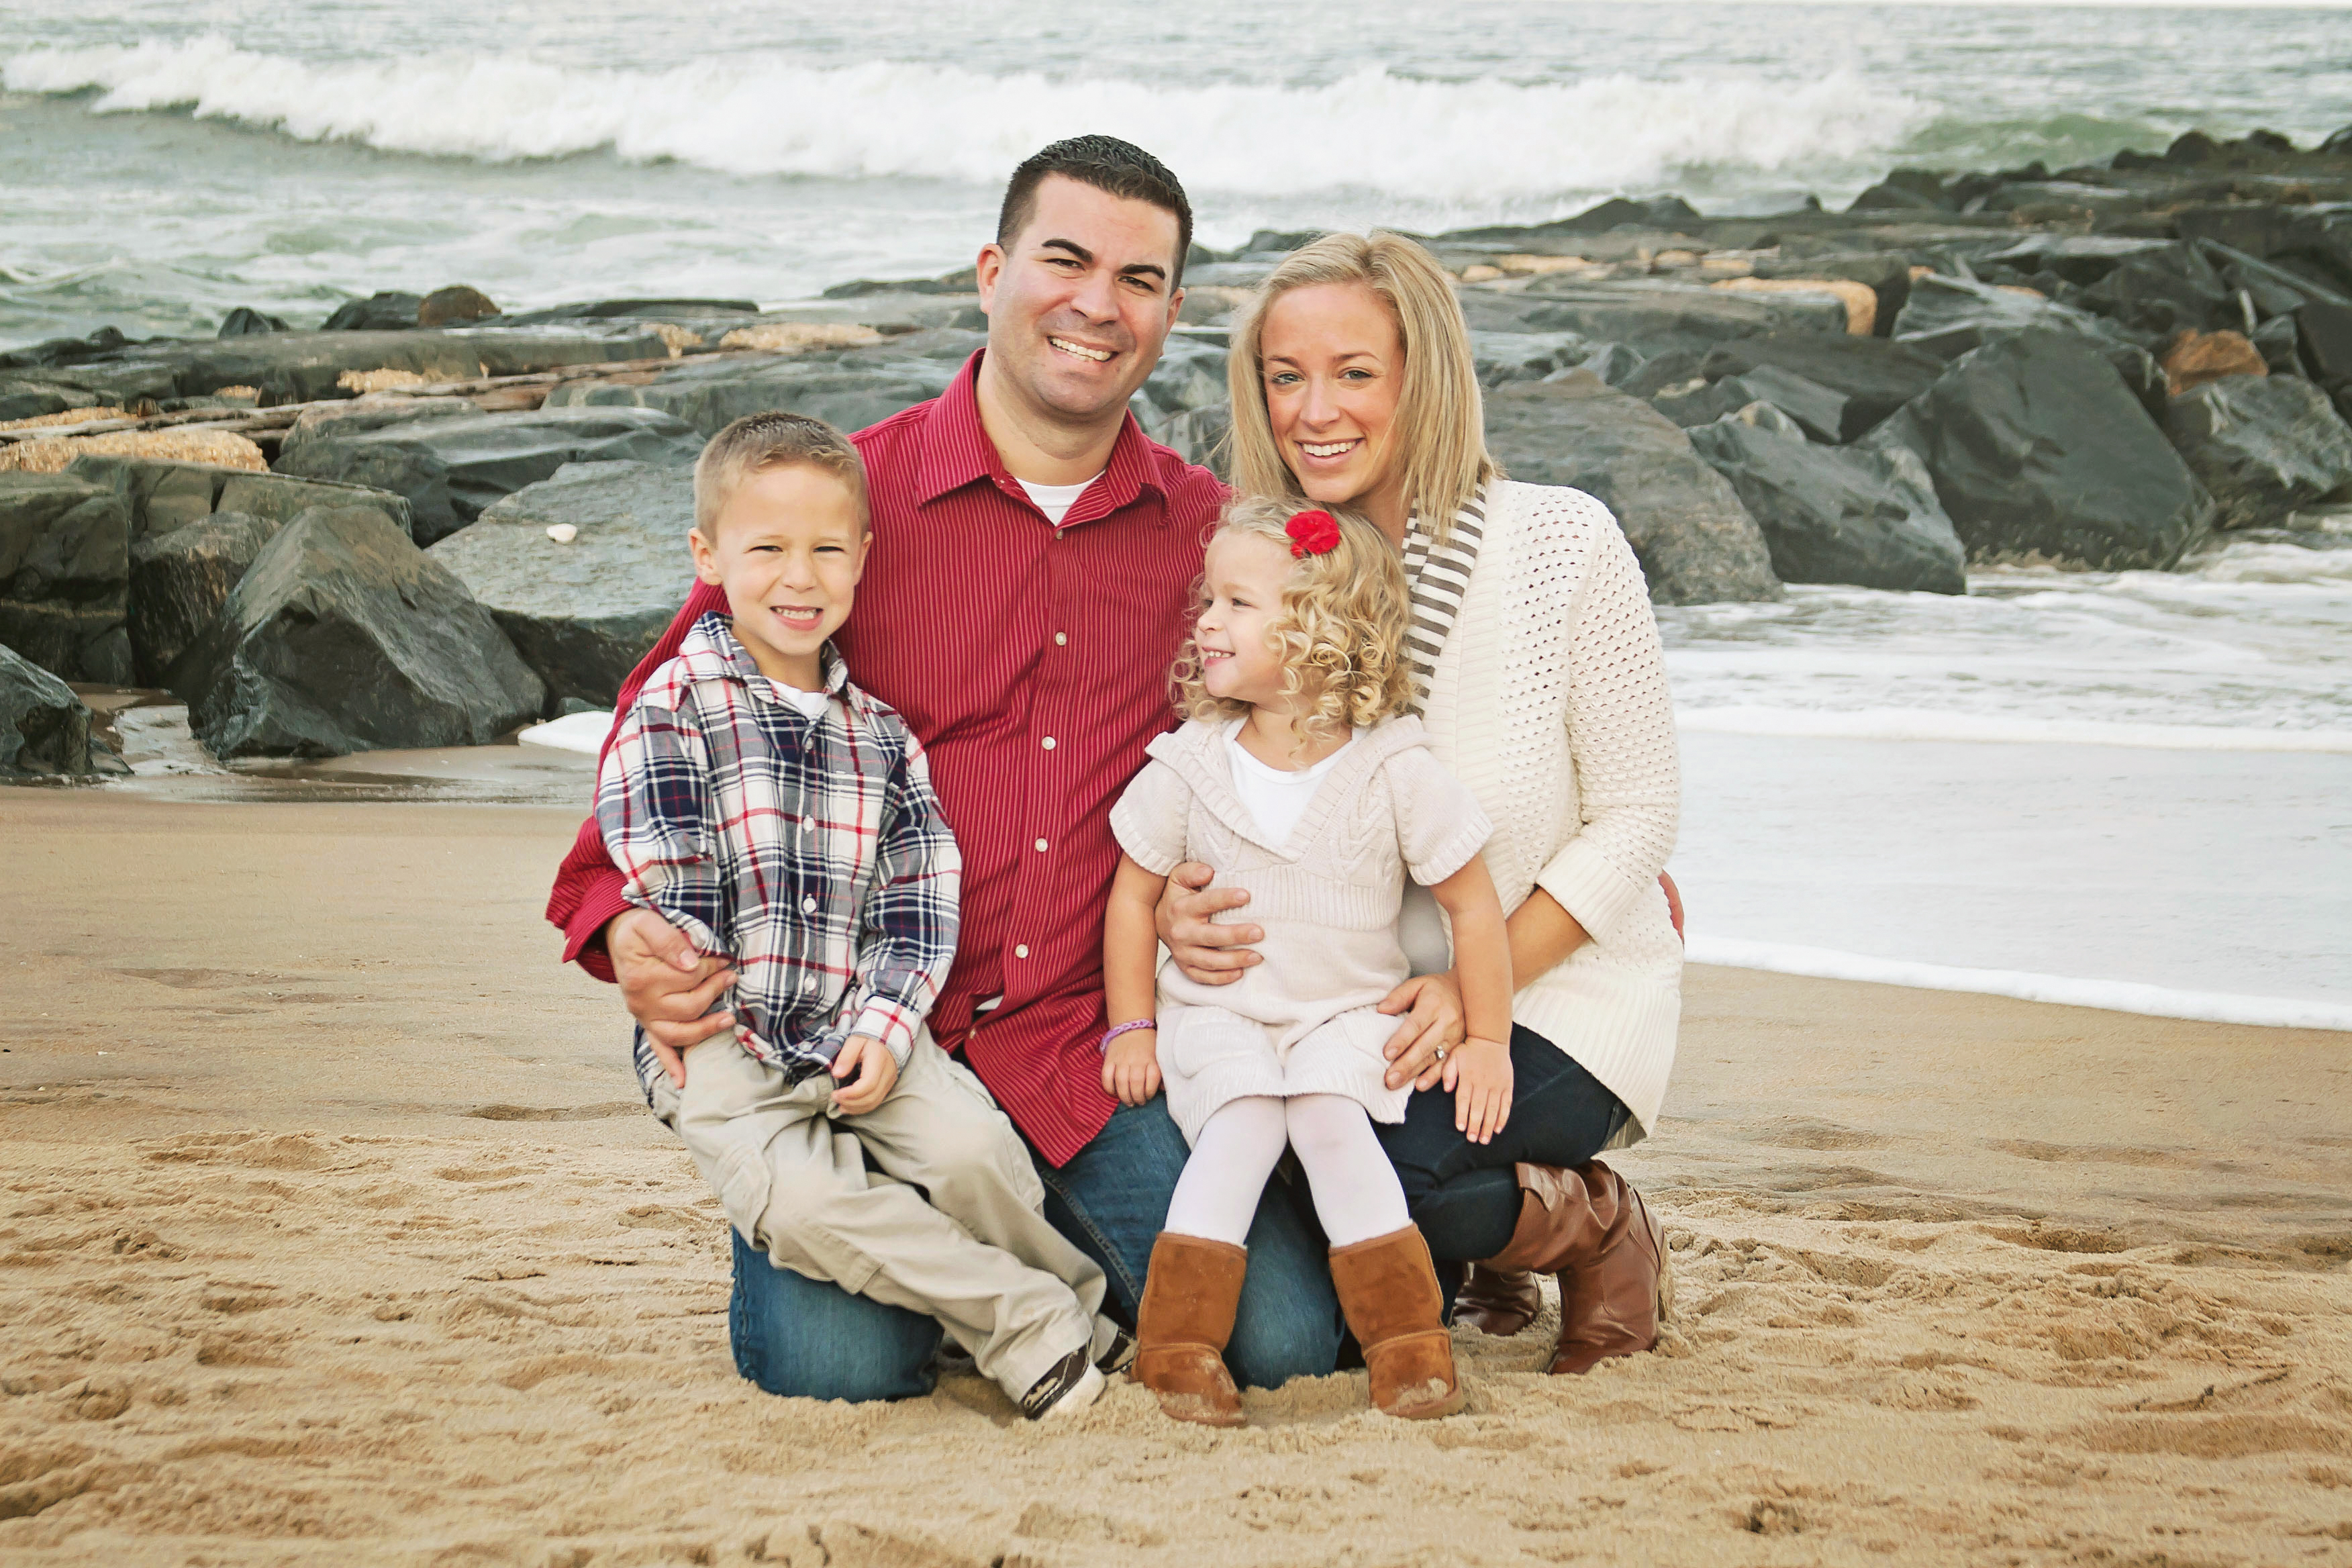 Family photo at the beach.